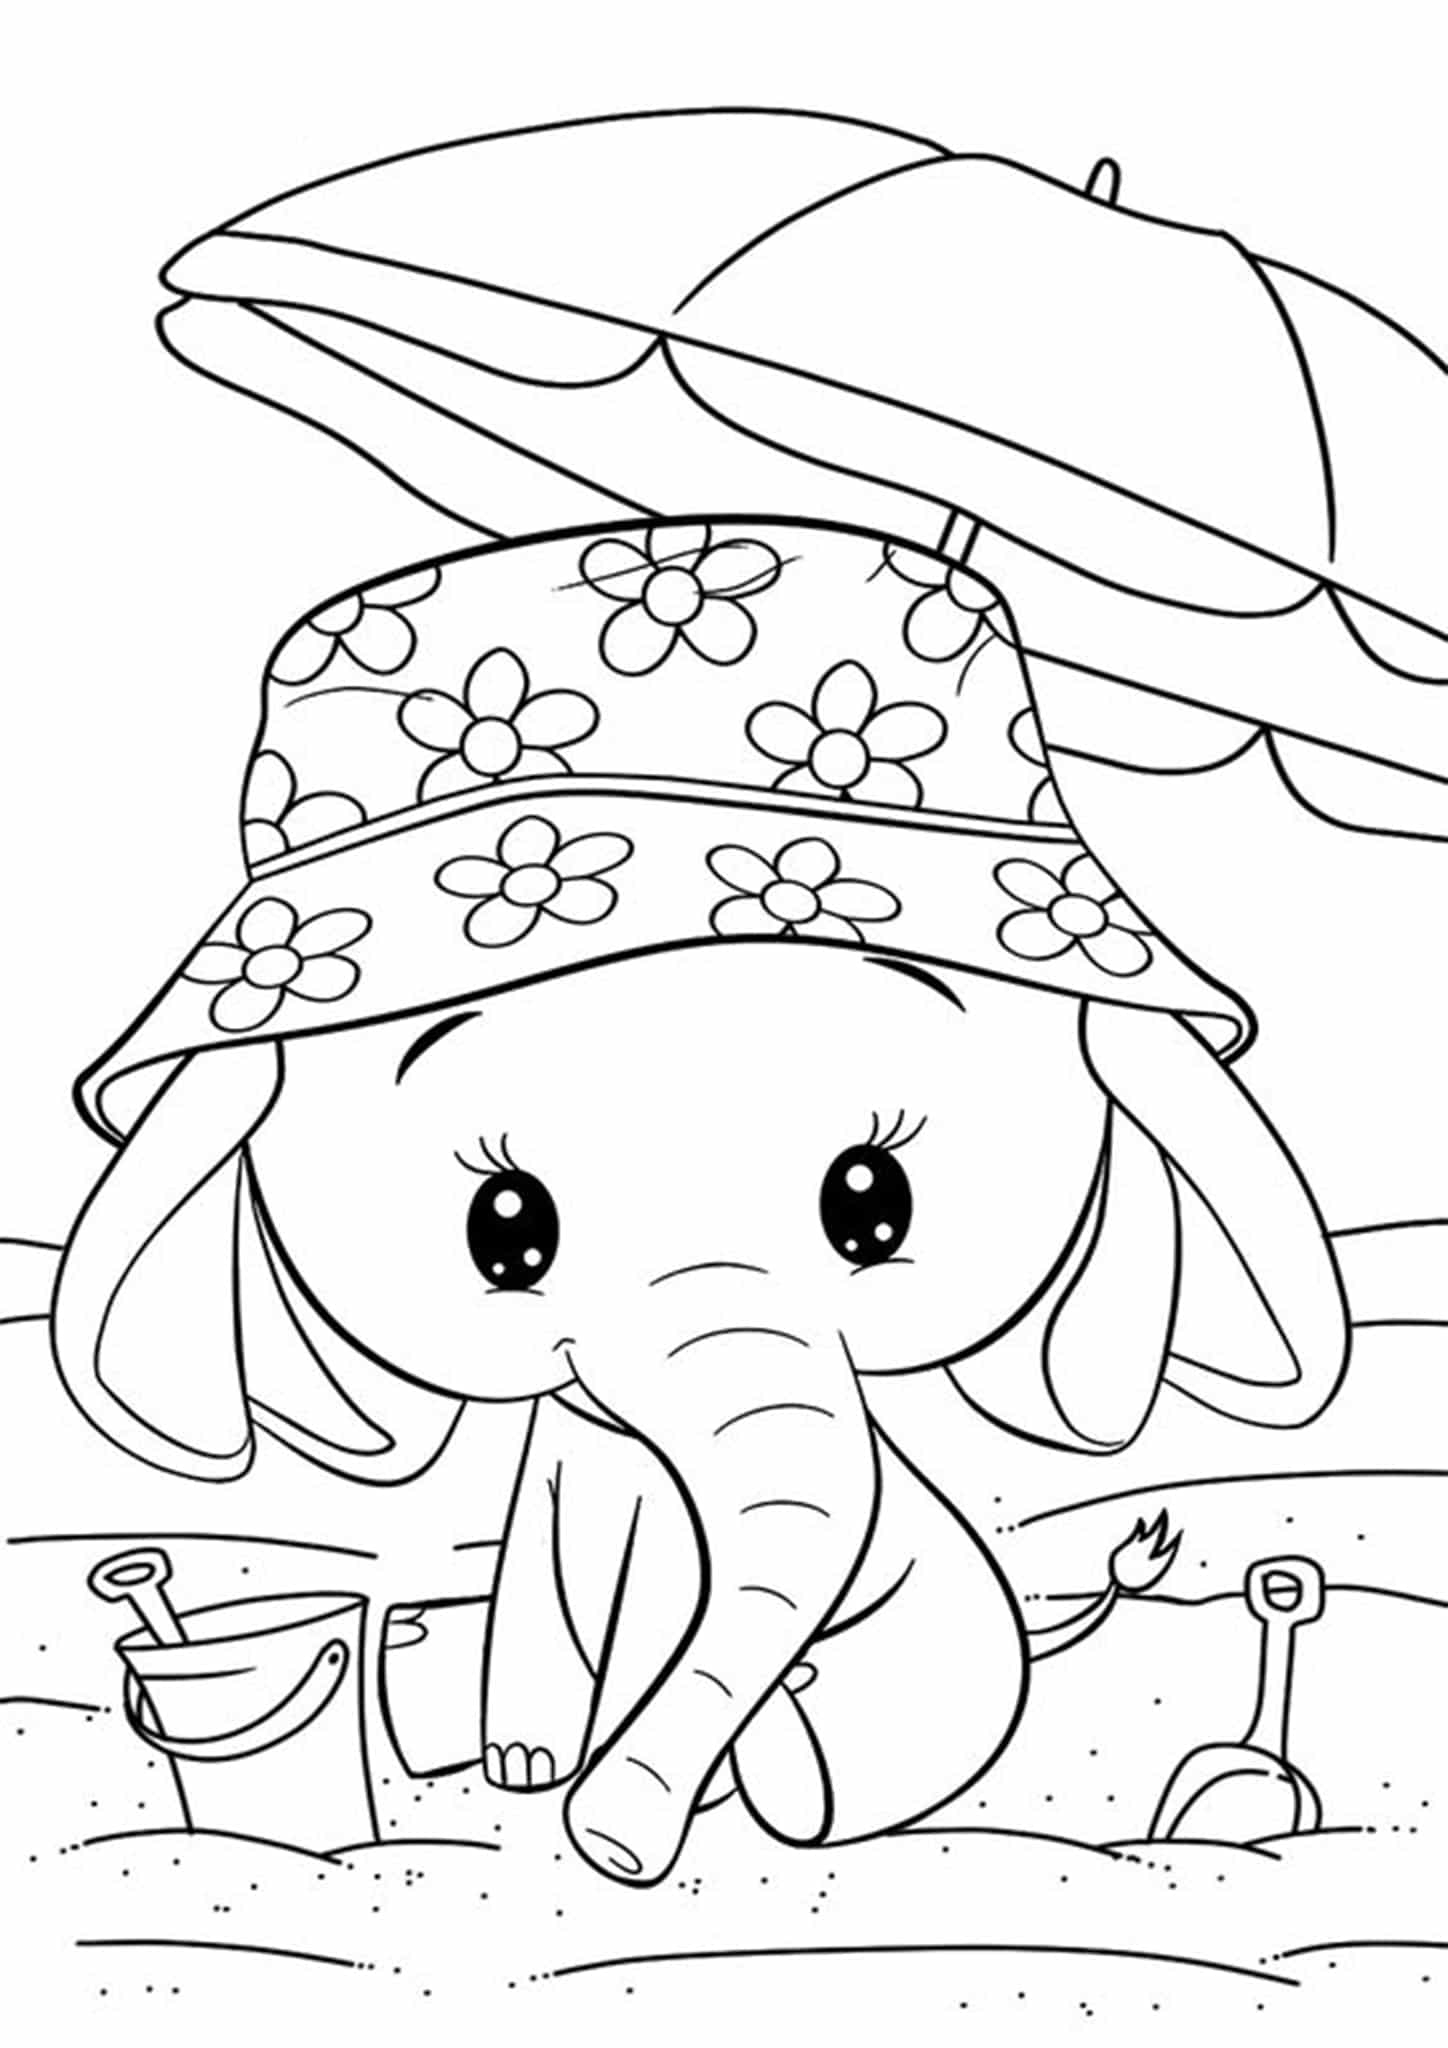 coloring sheets elephant free easy to print elephant coloring pages tulamama elephant coloring sheets